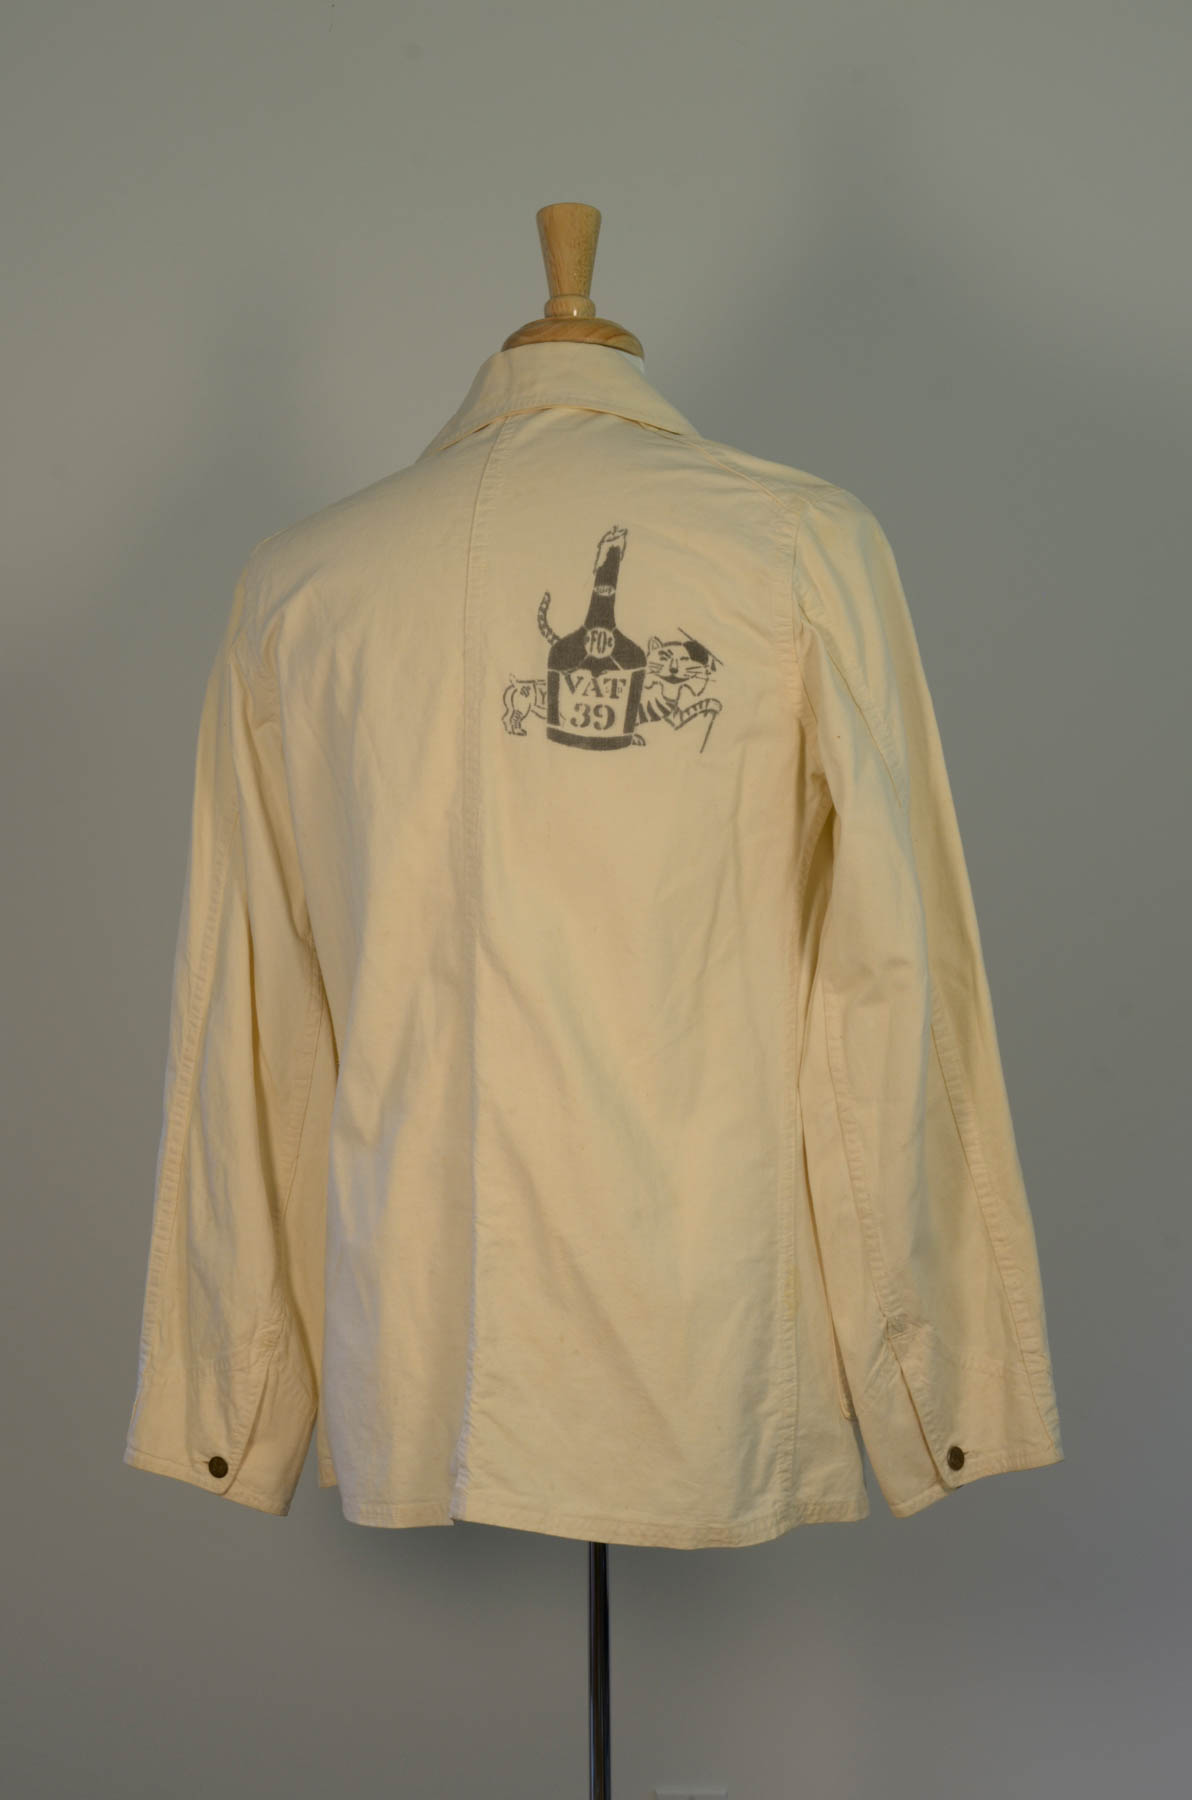 Beer Jacket 1939 Rear